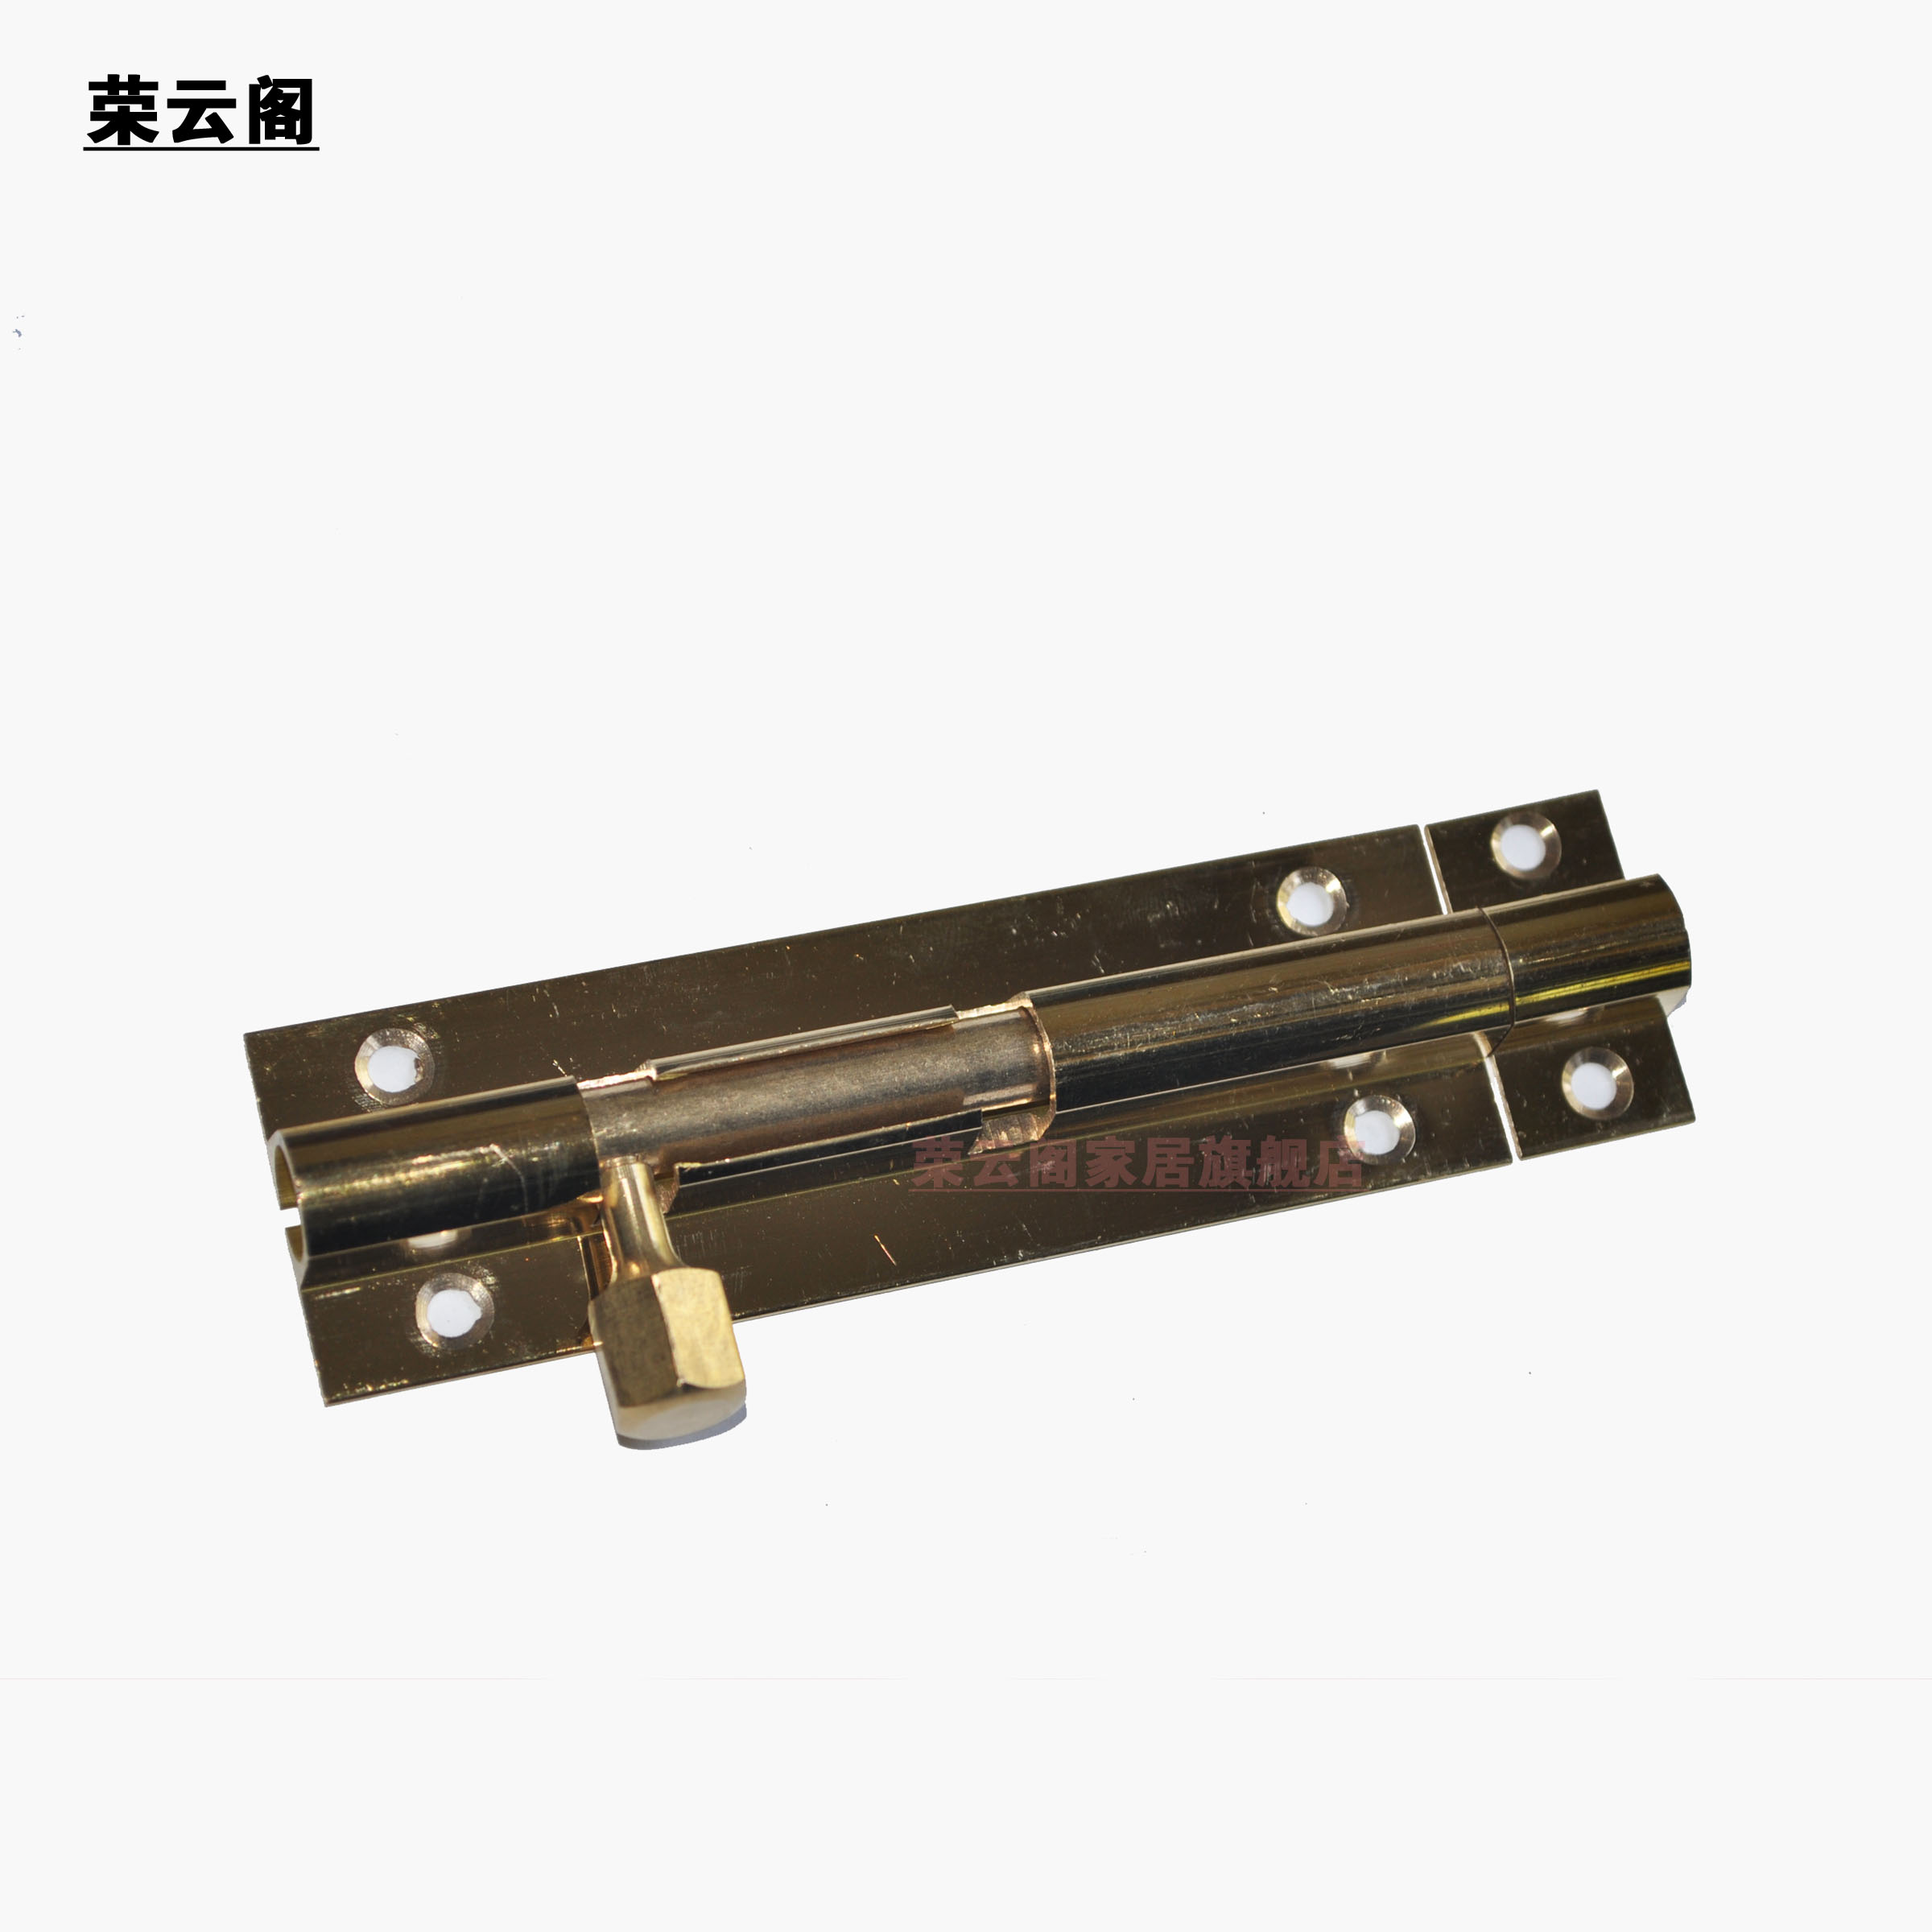 New brass copper antique furniture chinese decoration accessories ancient copper bolt out the at-539 pin 11.7 cm